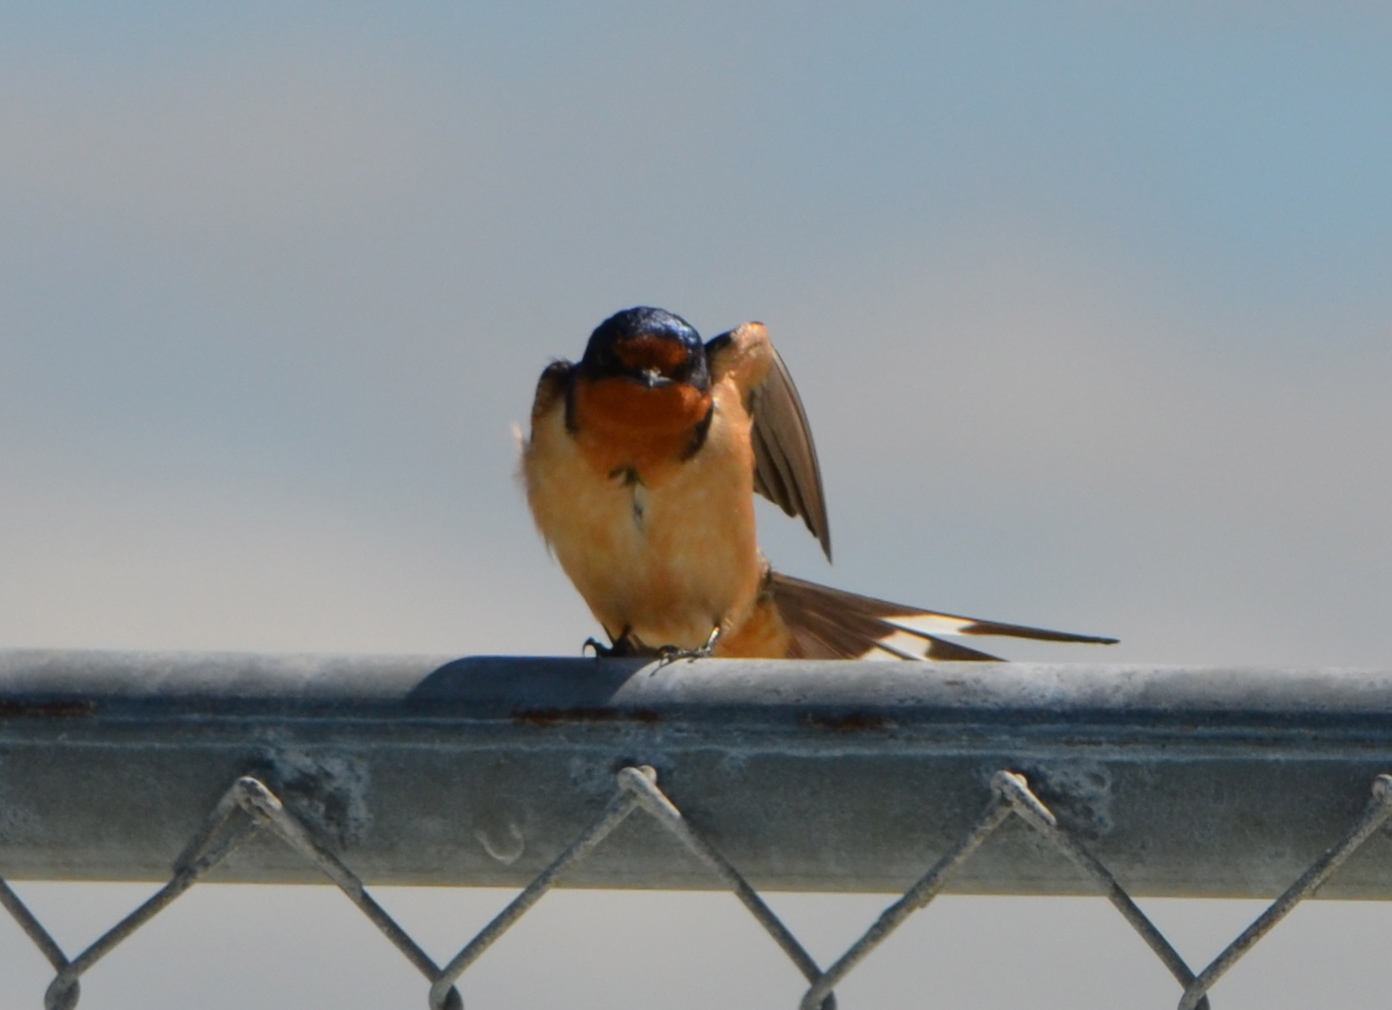 Barn Swallow on fence on west side of Seaplane Lagoon.  Common to the area, often seen flying low over the water looking for flying insects,  nesting almost exclusively on man-made structures, possibly Building 29.